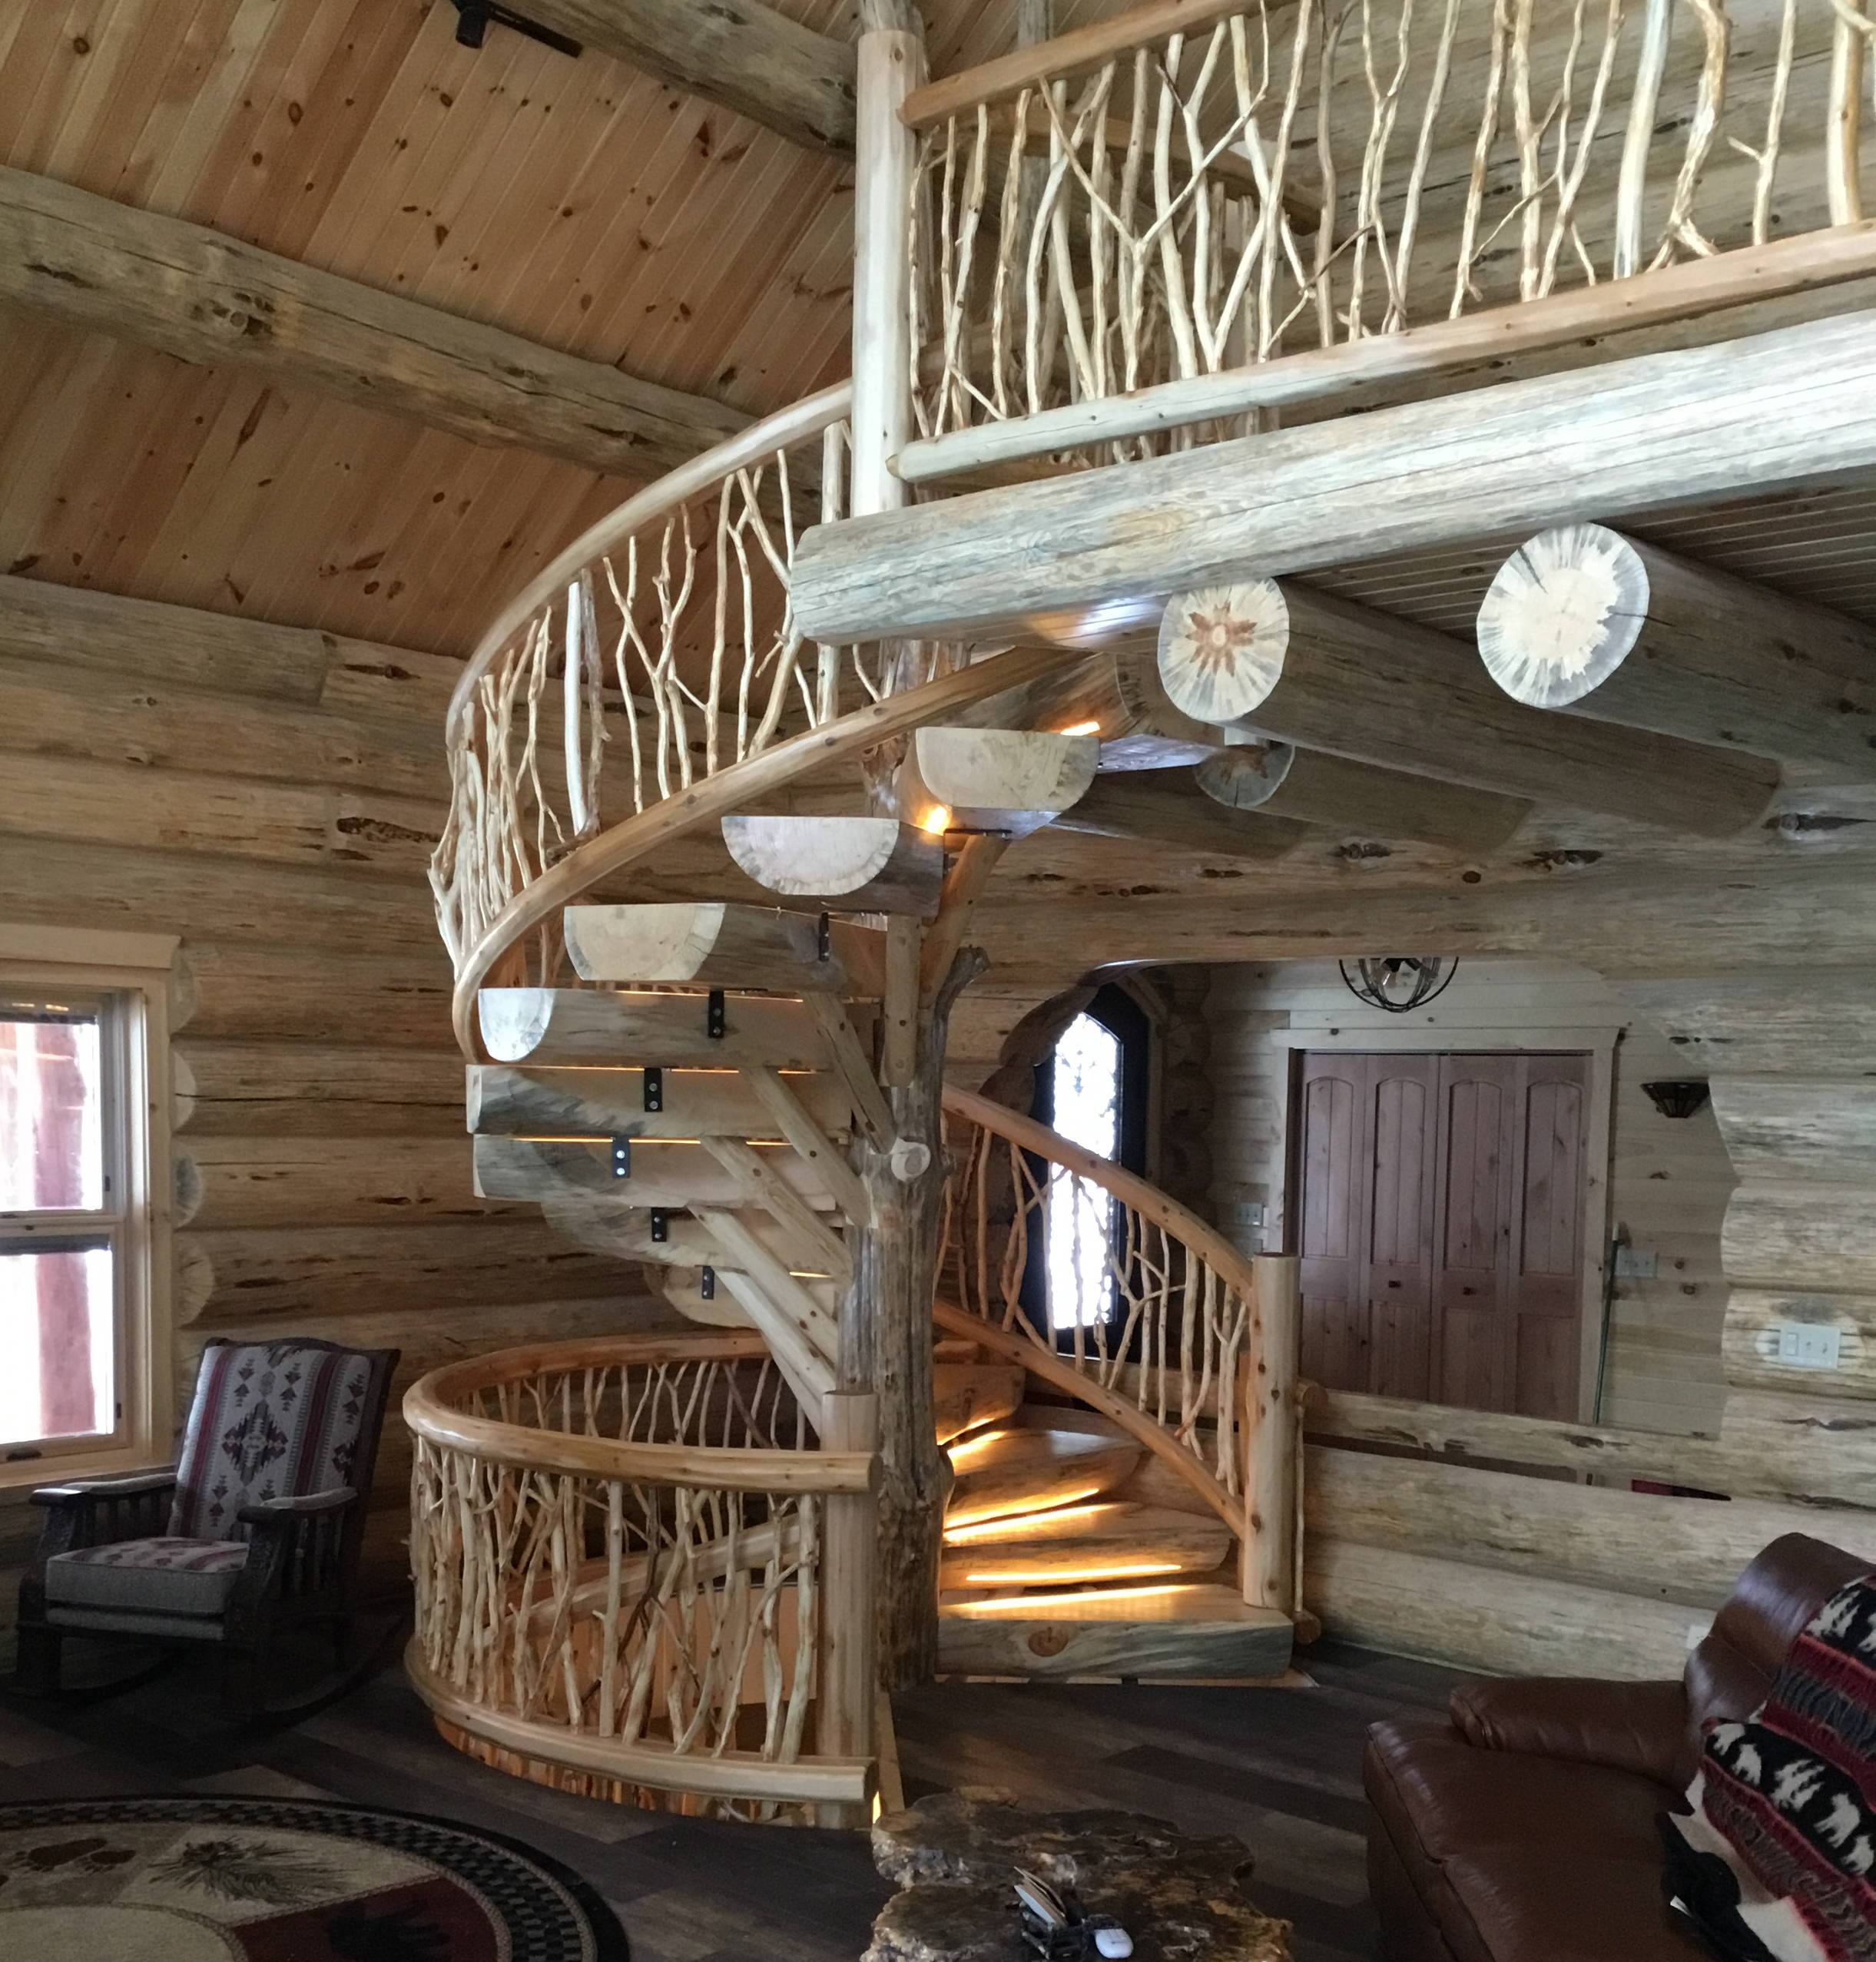 Spiral log stairs with twig railing